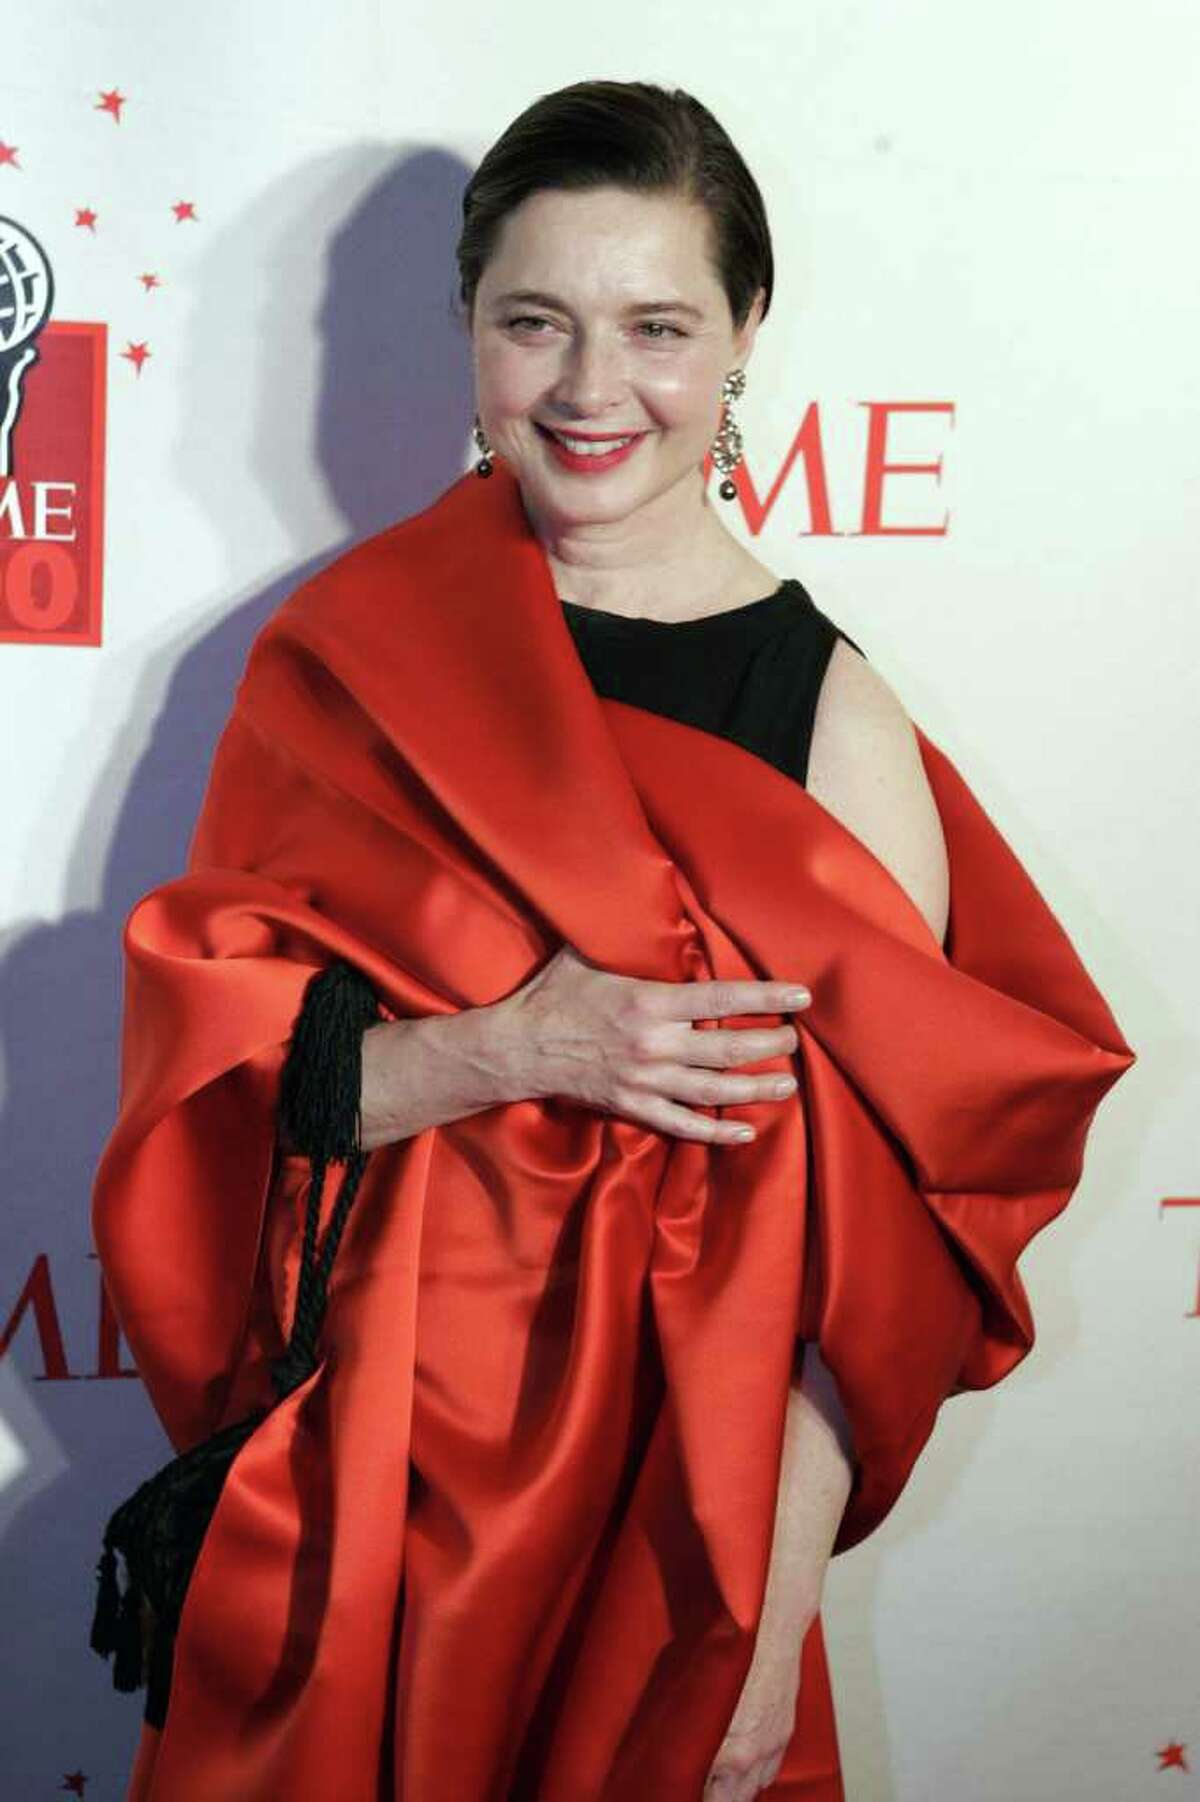 Actress Isabella Rossellini arrives for Time's celebration of the magazine's '100 Most Influential People' in New York May 8, 2006. REUTERS/Keith Bedford